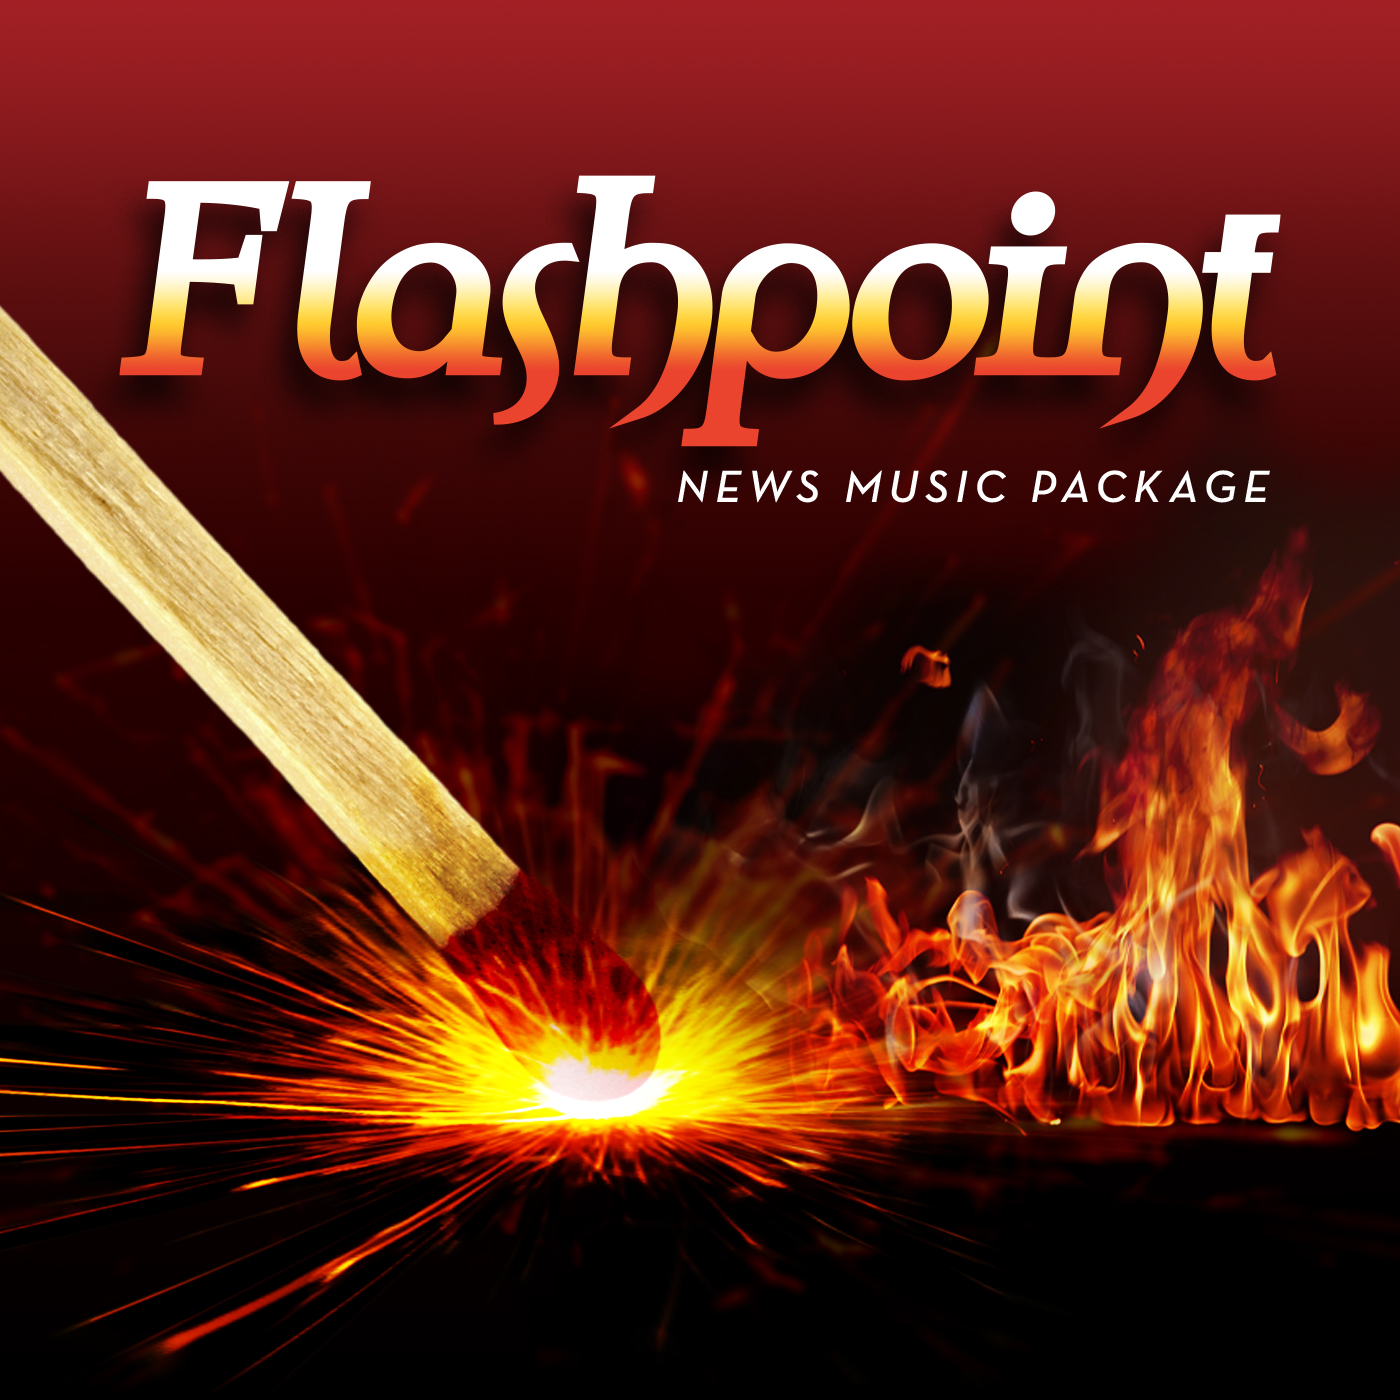 Flashpoint News Music Package